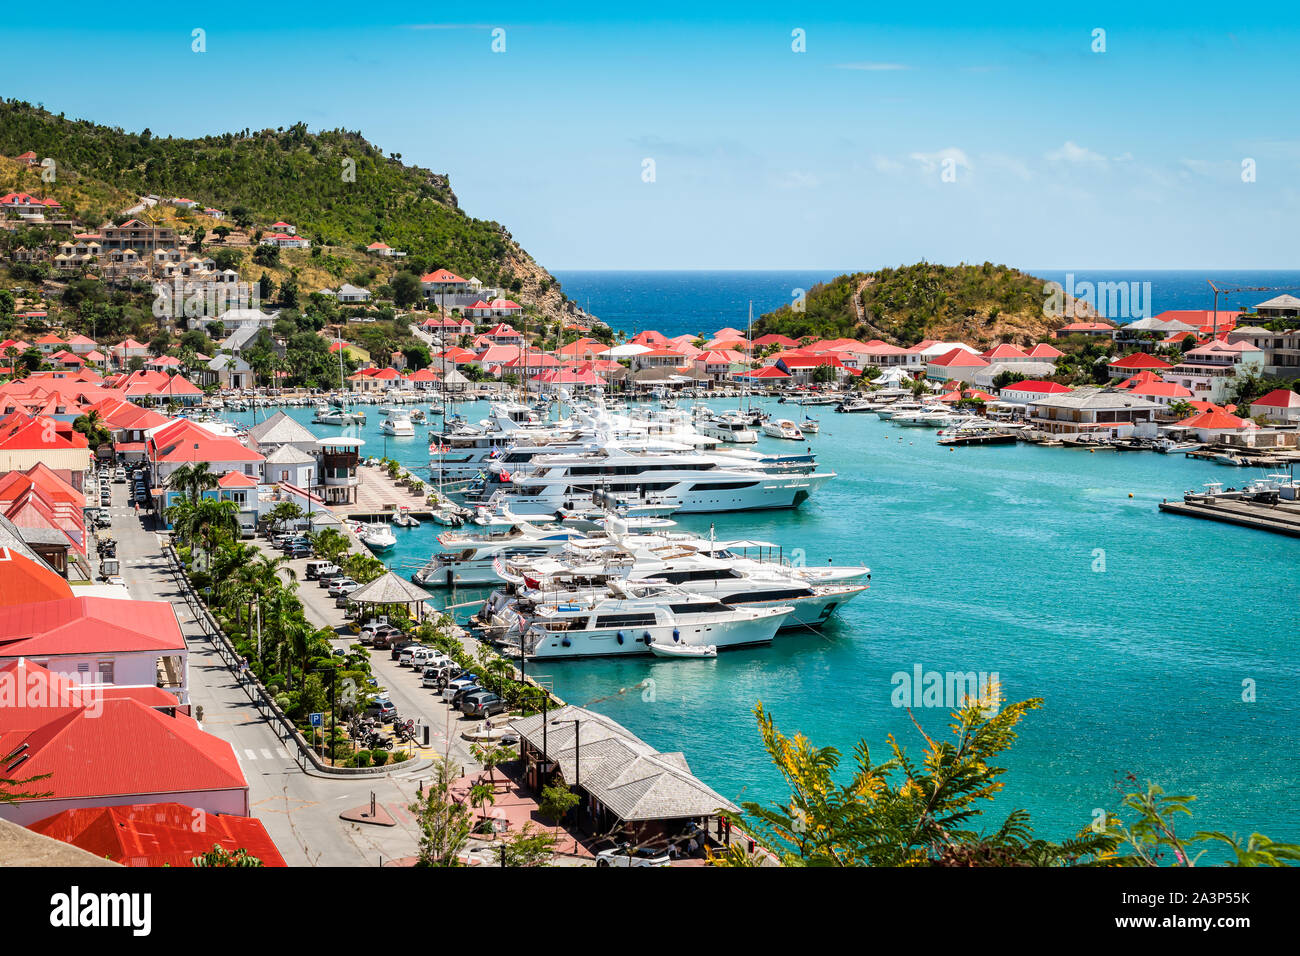 Gustavia, St Barts. Luxury yachts in harbor, West Indies, Caribbean. Stock Photo